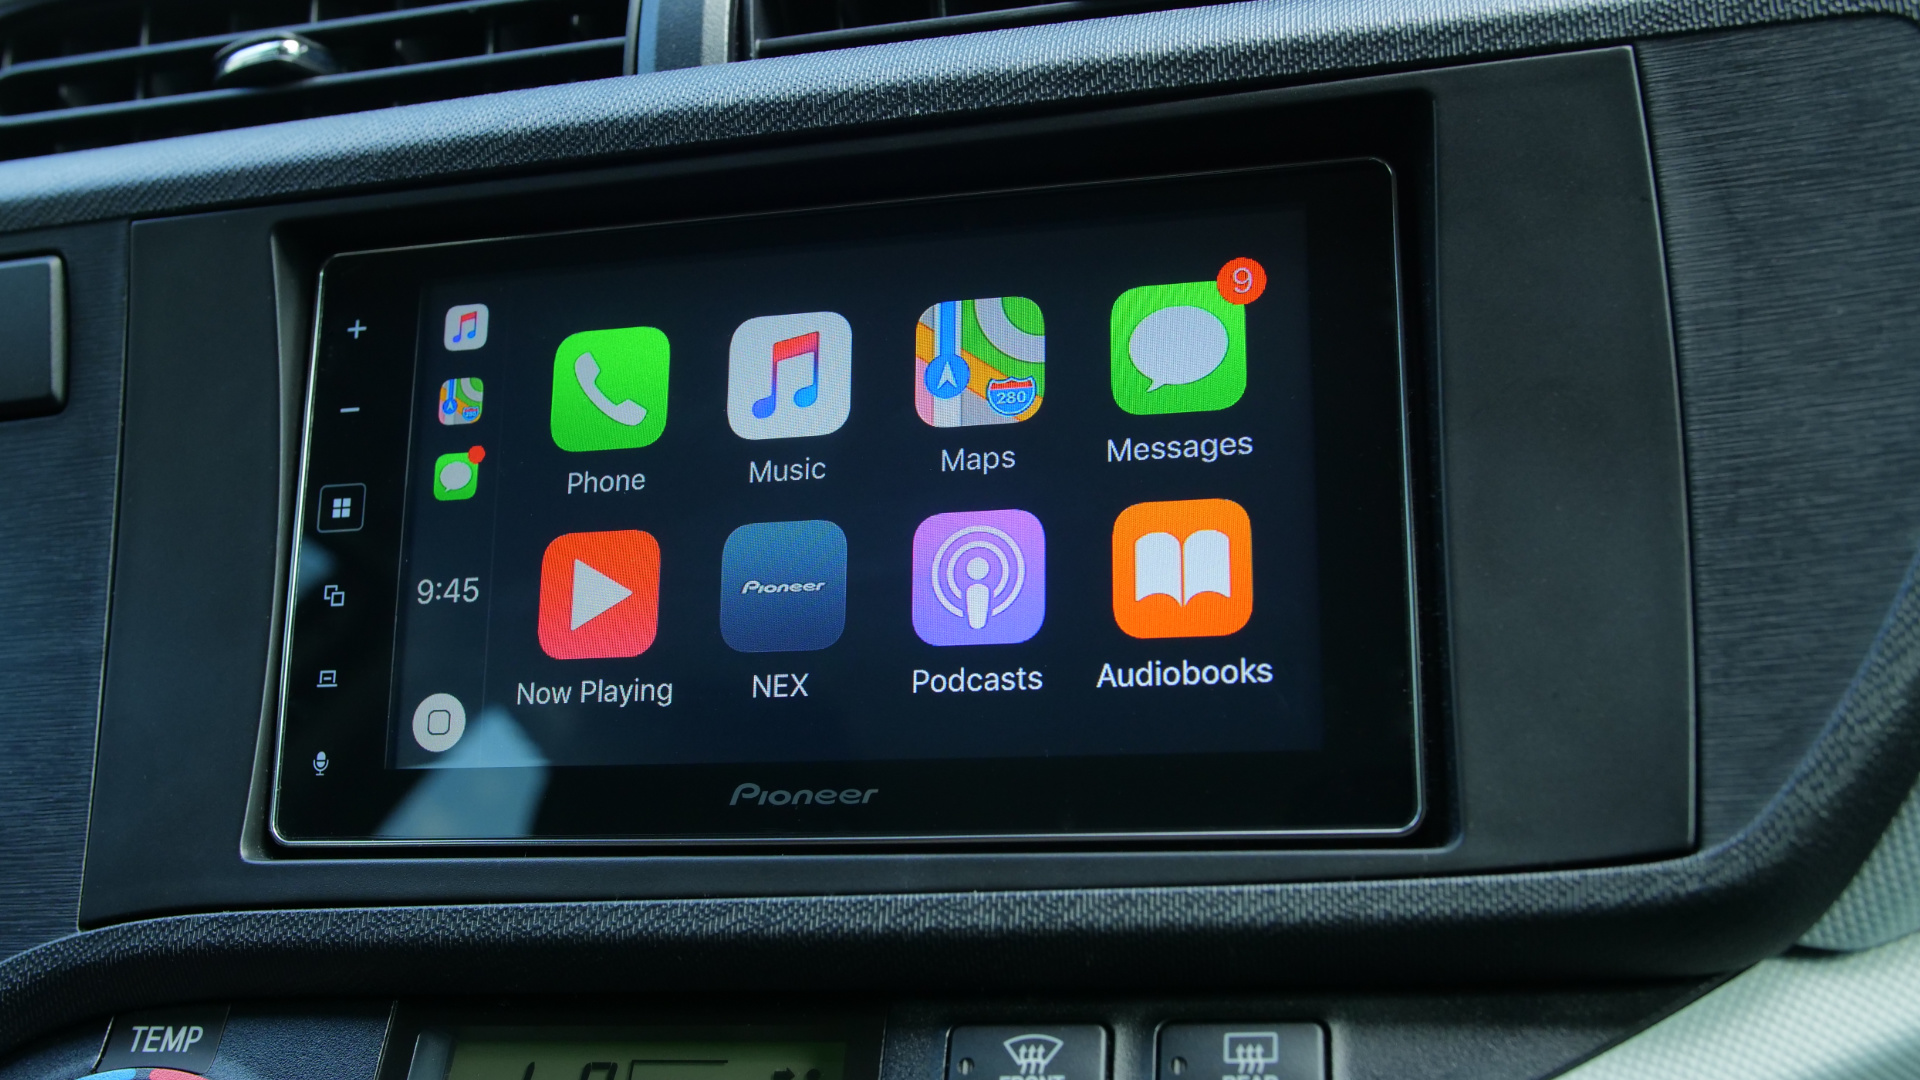 Hands-on: Pioneer MVH-1400NEX offers affordable CarPlay in a simple package